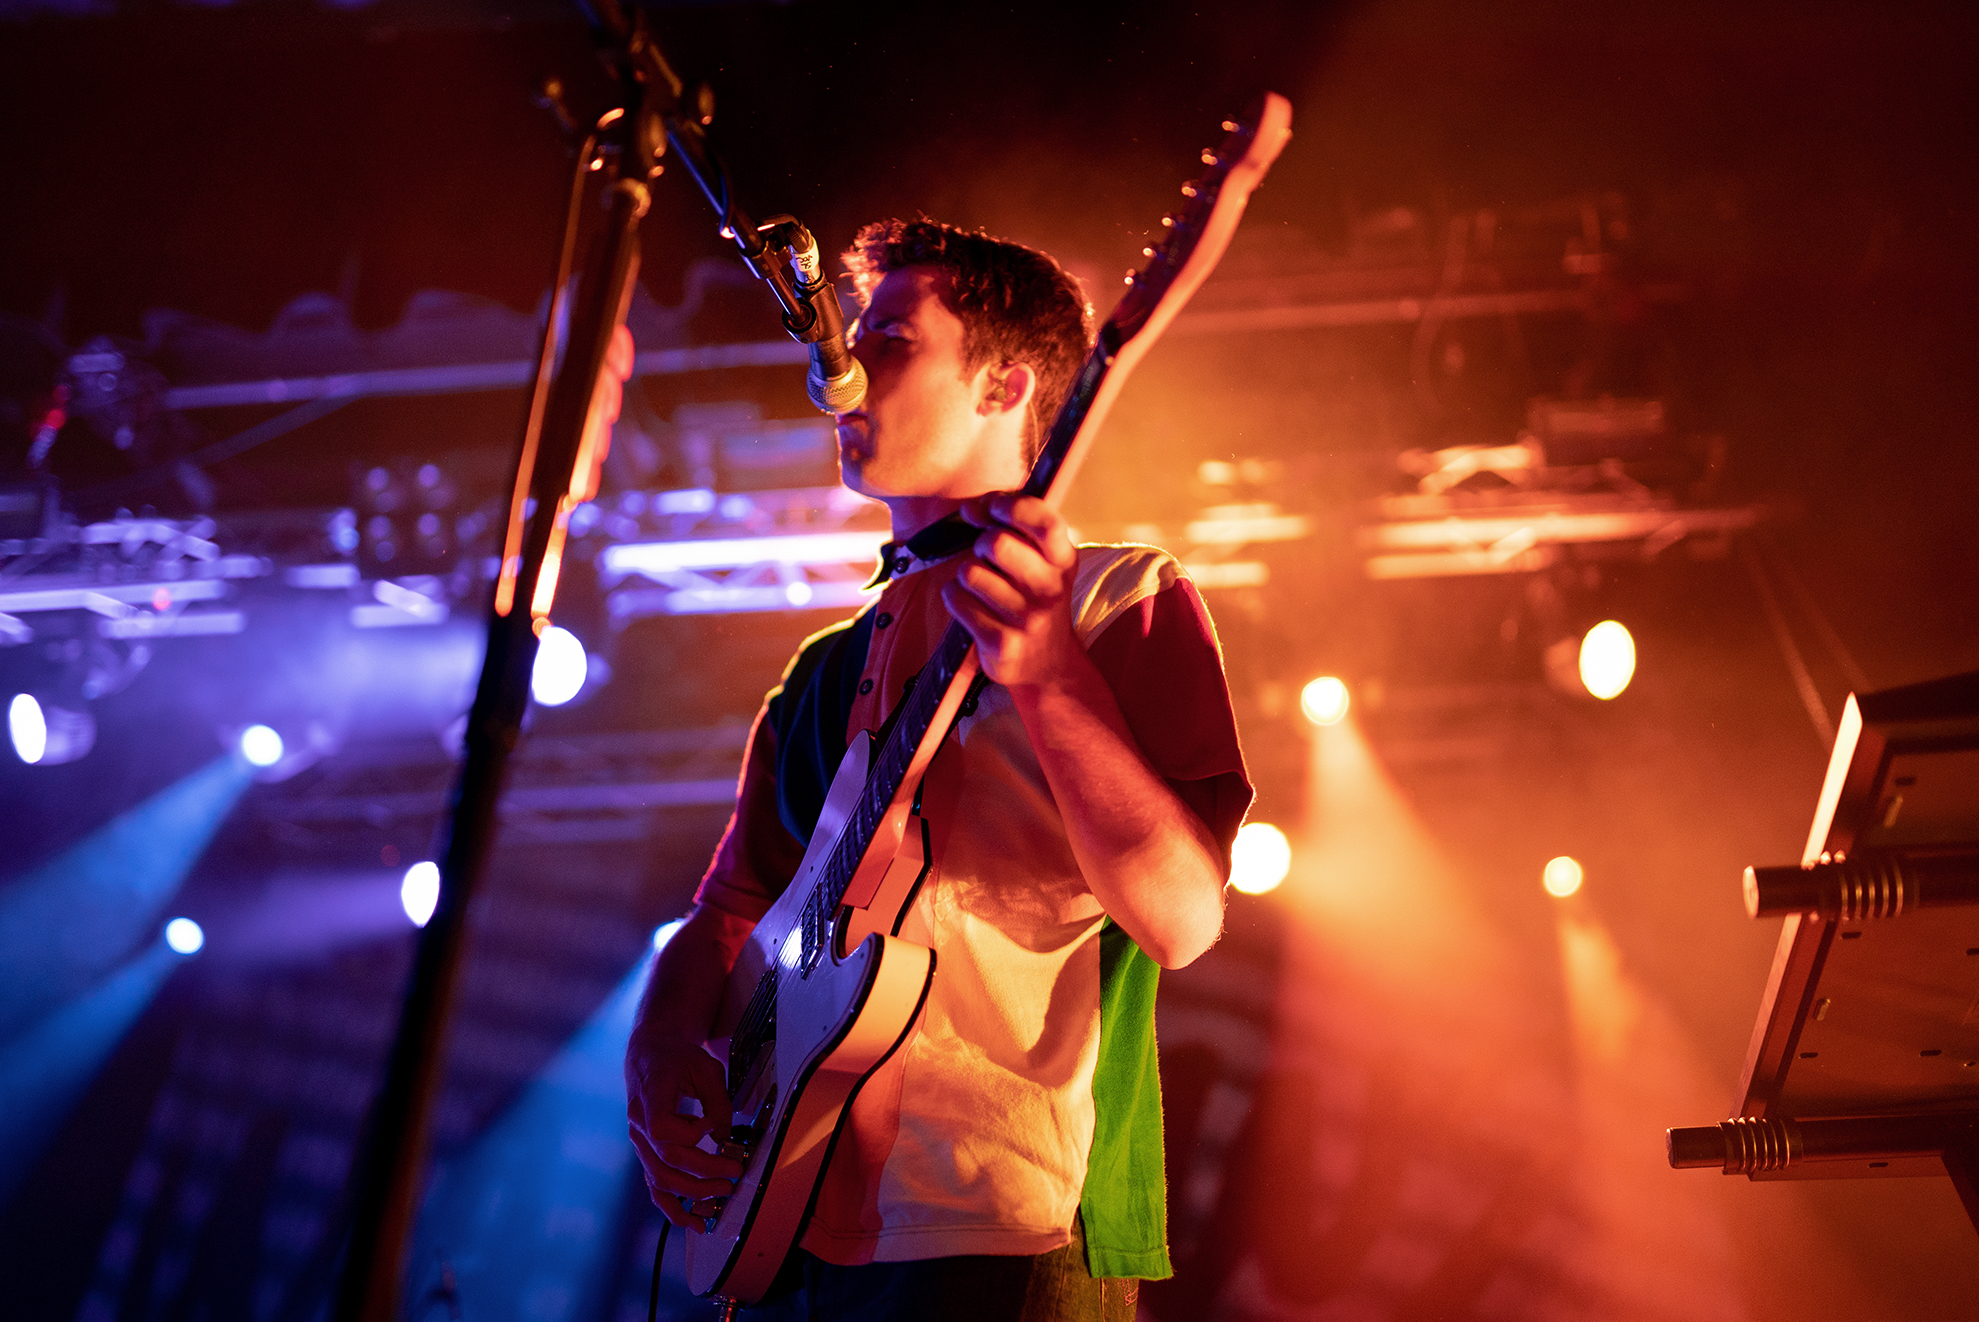 Wallows - Electric Brixton - 06_06_19 - Milly McAlister 3.jpg